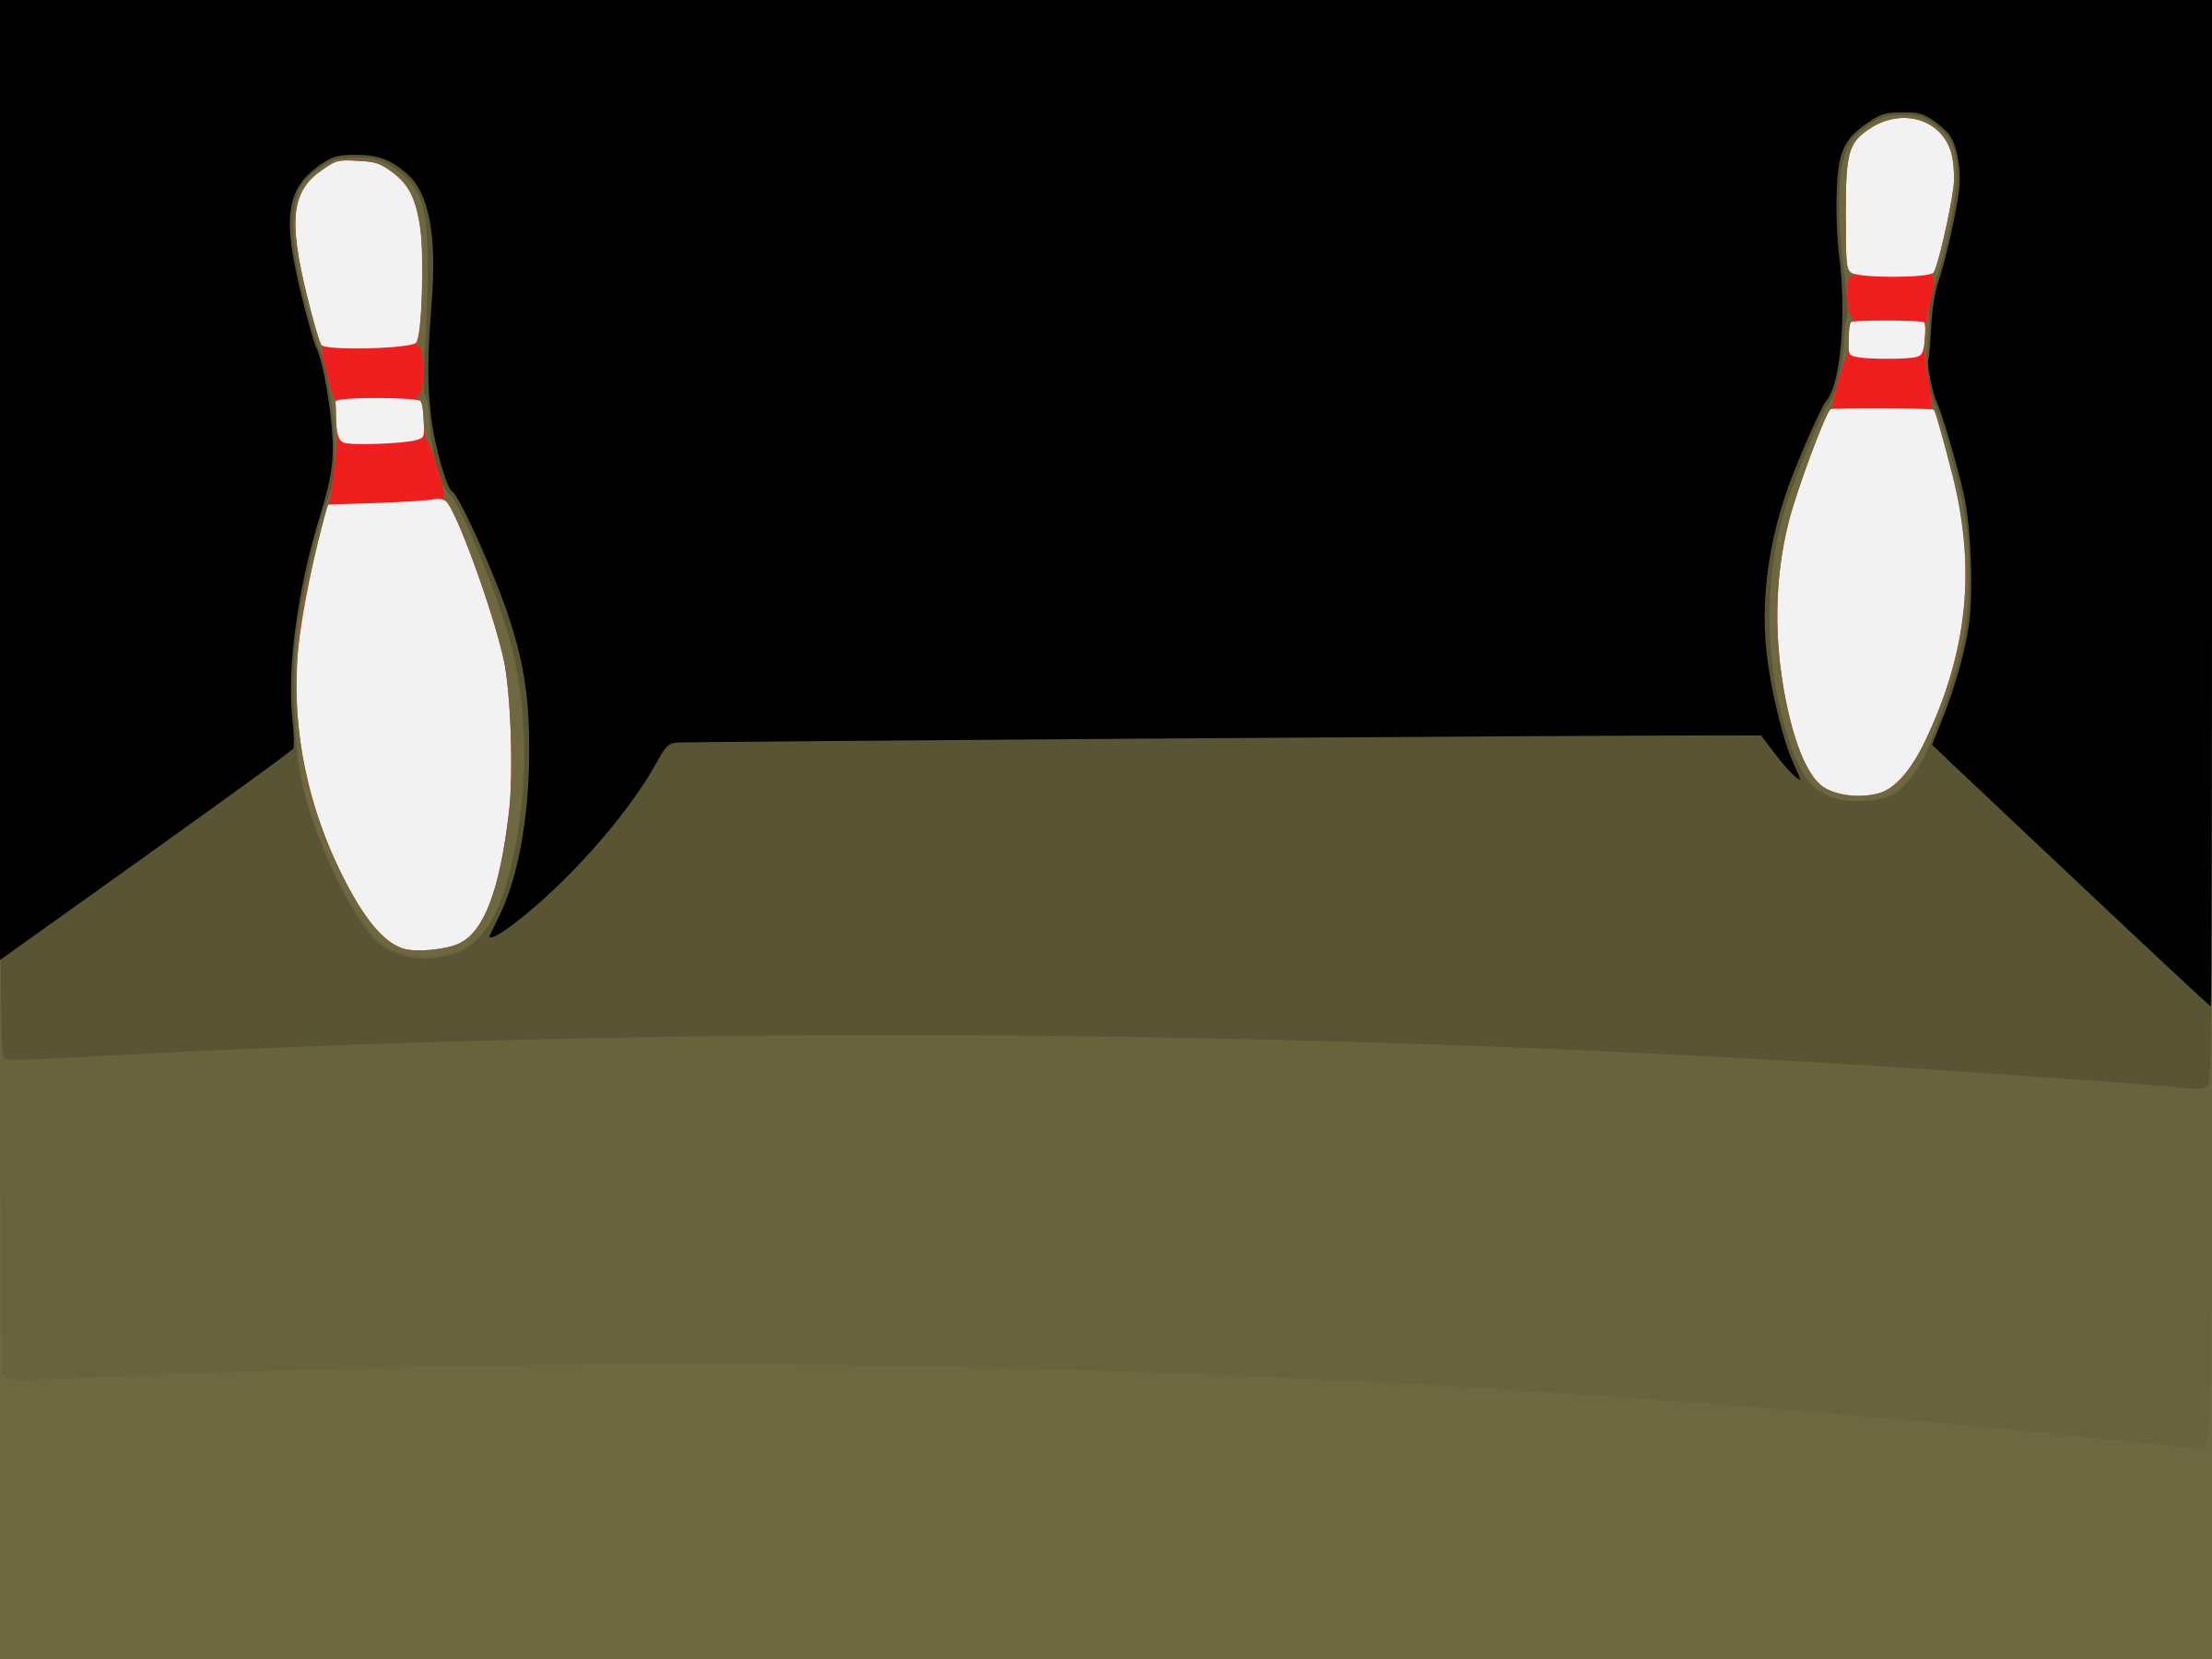 Bowling 4-10 Split by mazeo